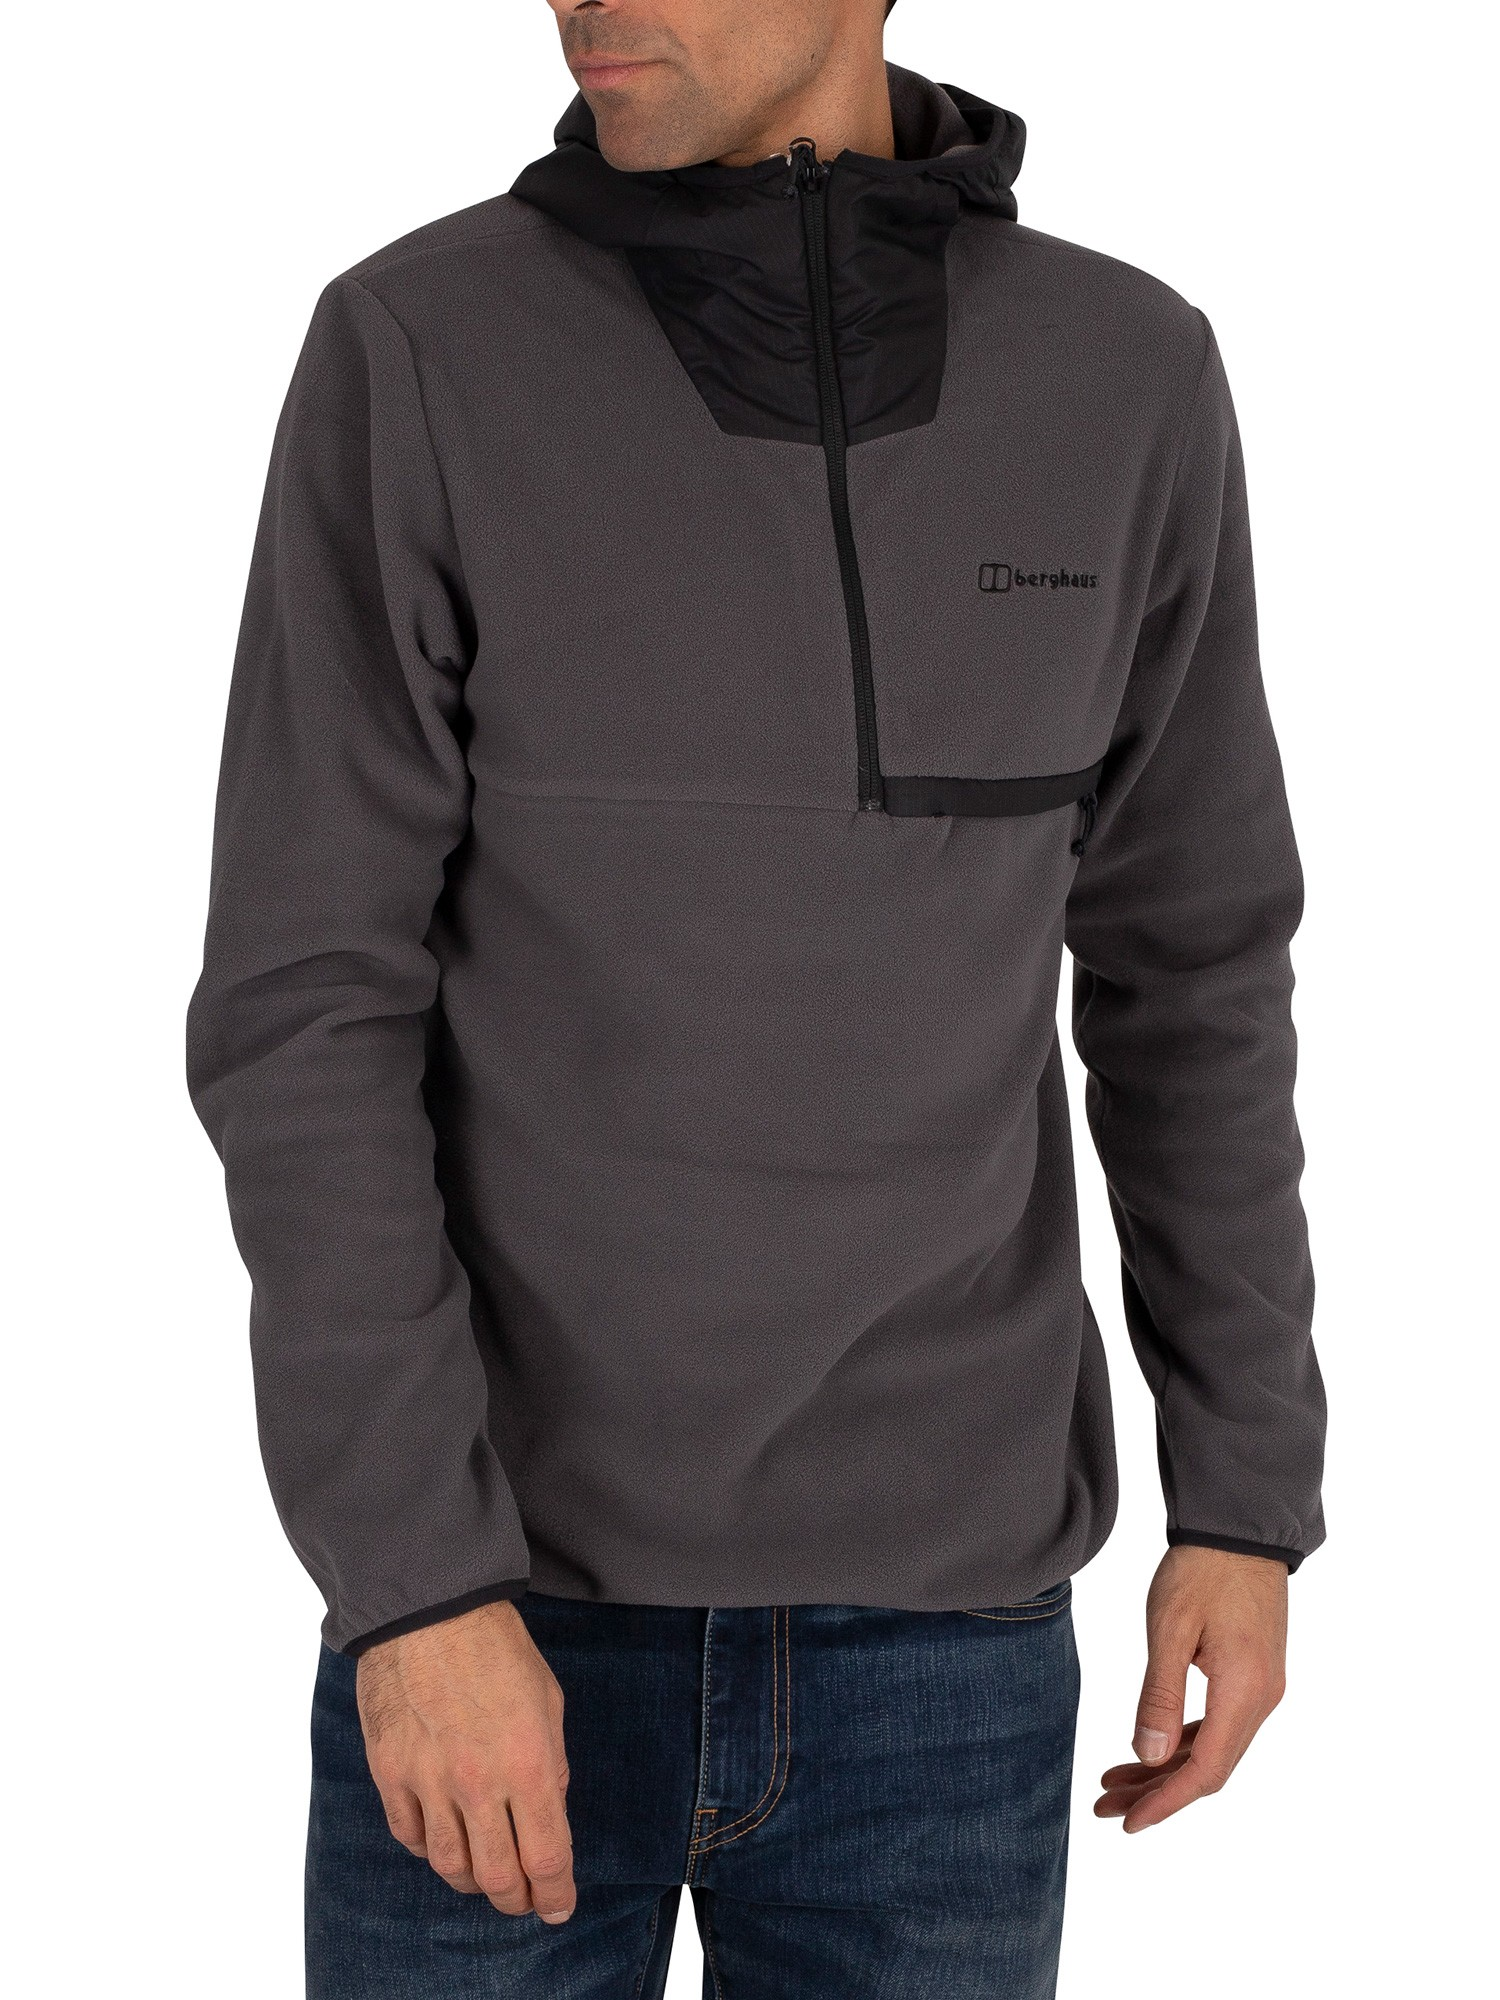 Berghaus Aslam Hooded Jacket - Grey/Black